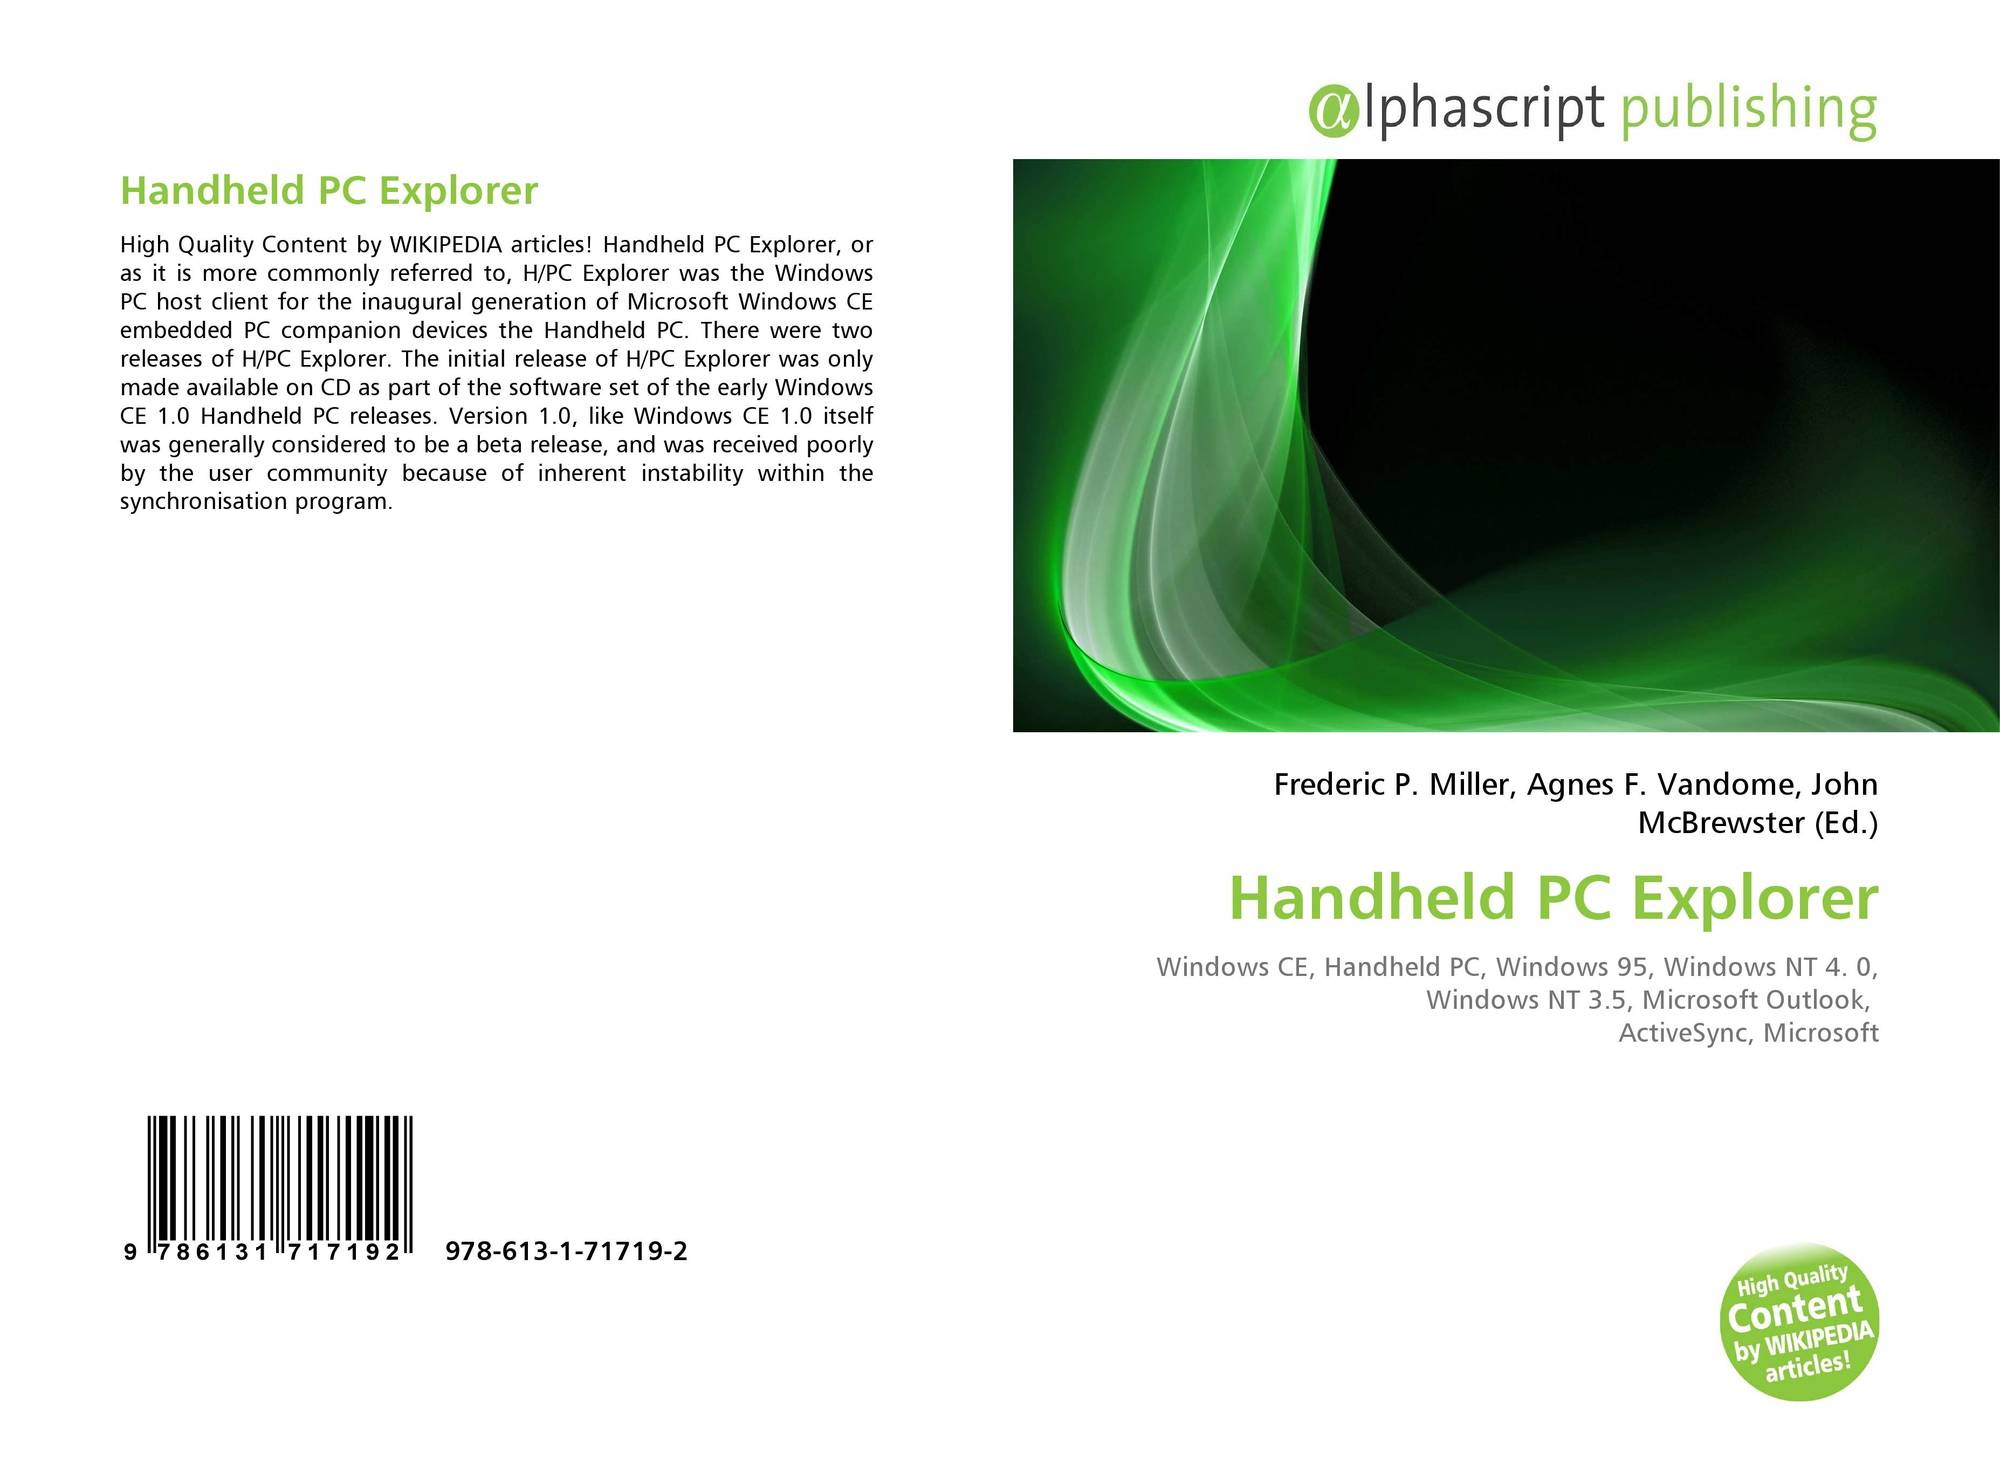 Handheld PC Explorer, 978-613-1-71719-2, 6131717192